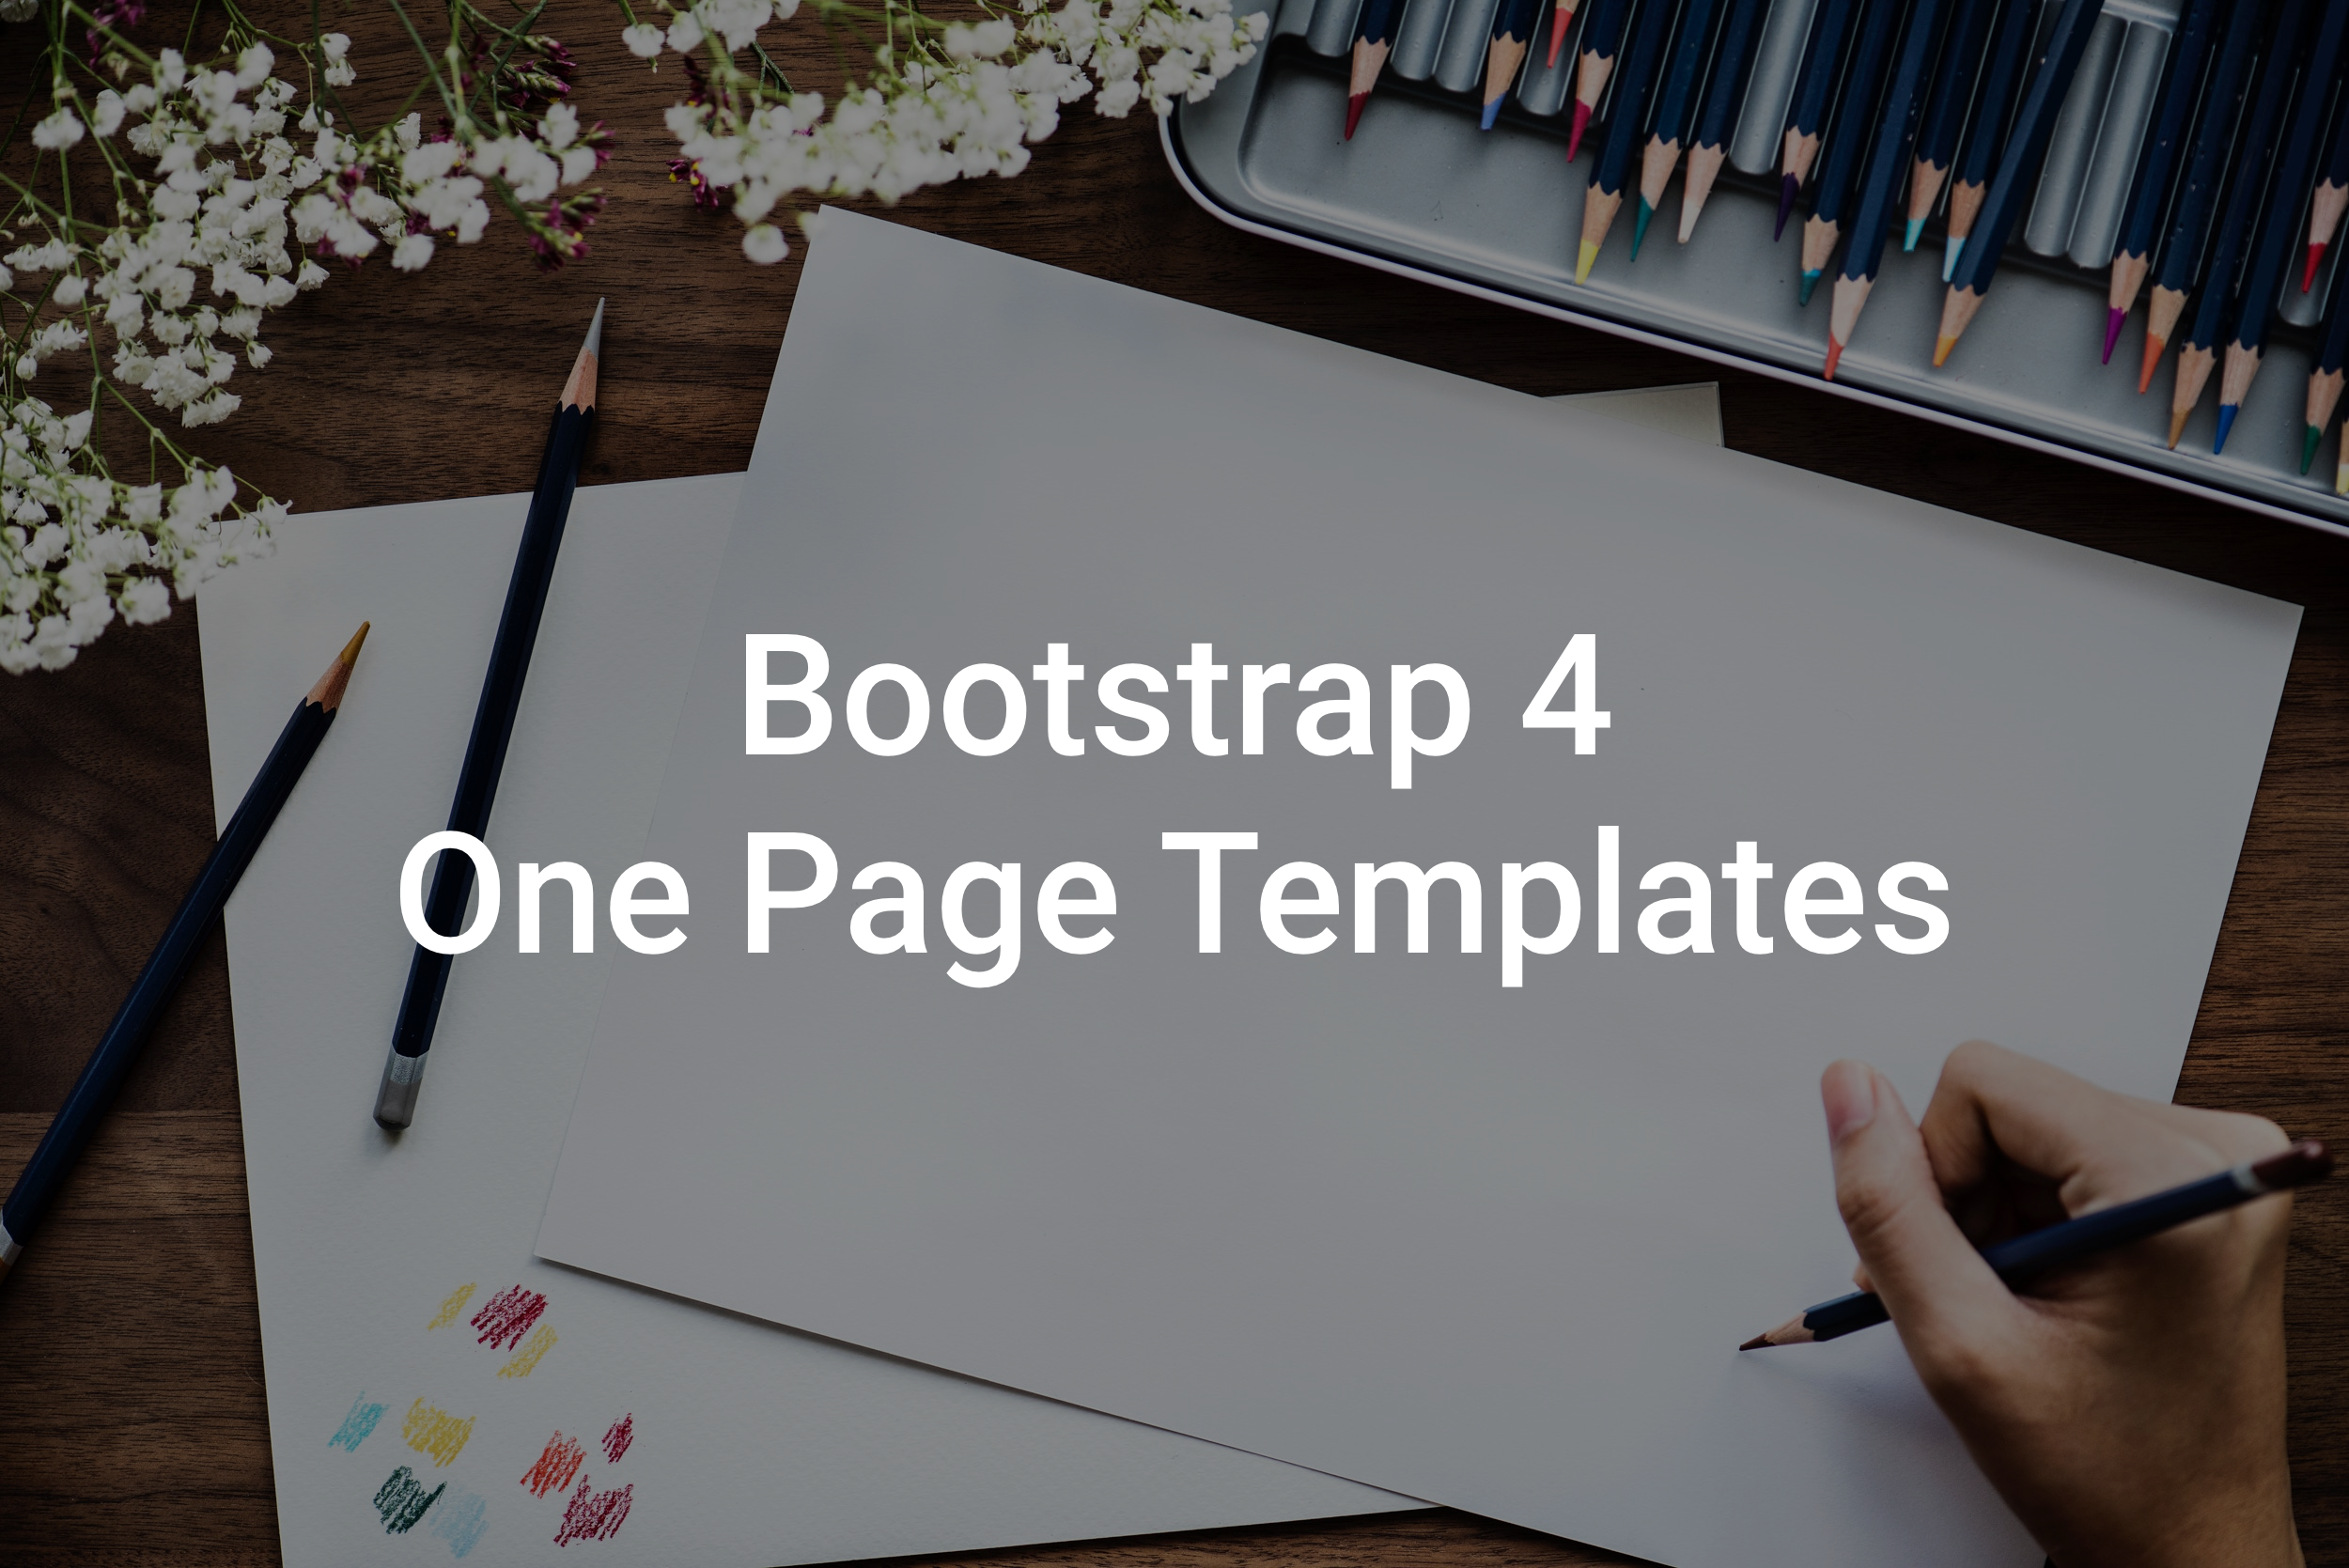 Top 19 Bootstrap 4 One Page Templates in 2018